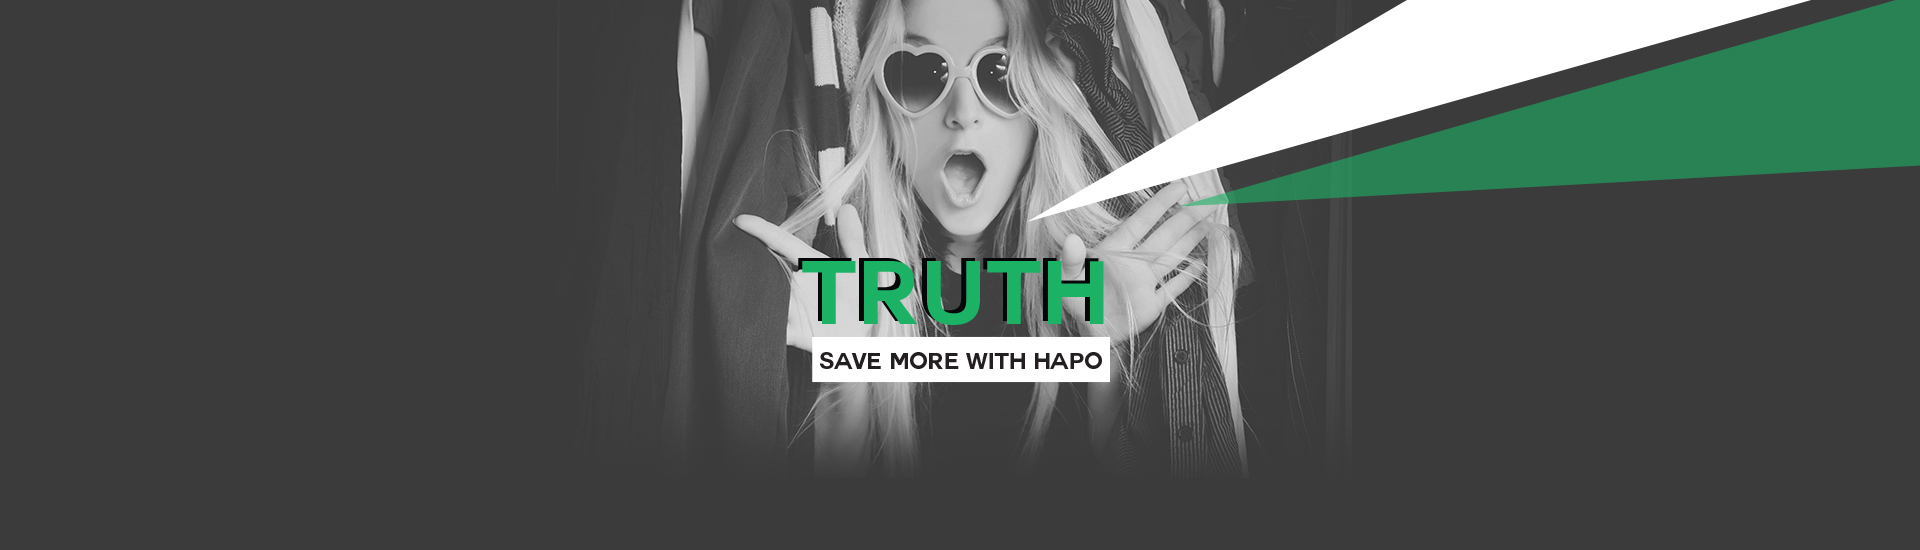 truth-vbt-save-more-with-hapo